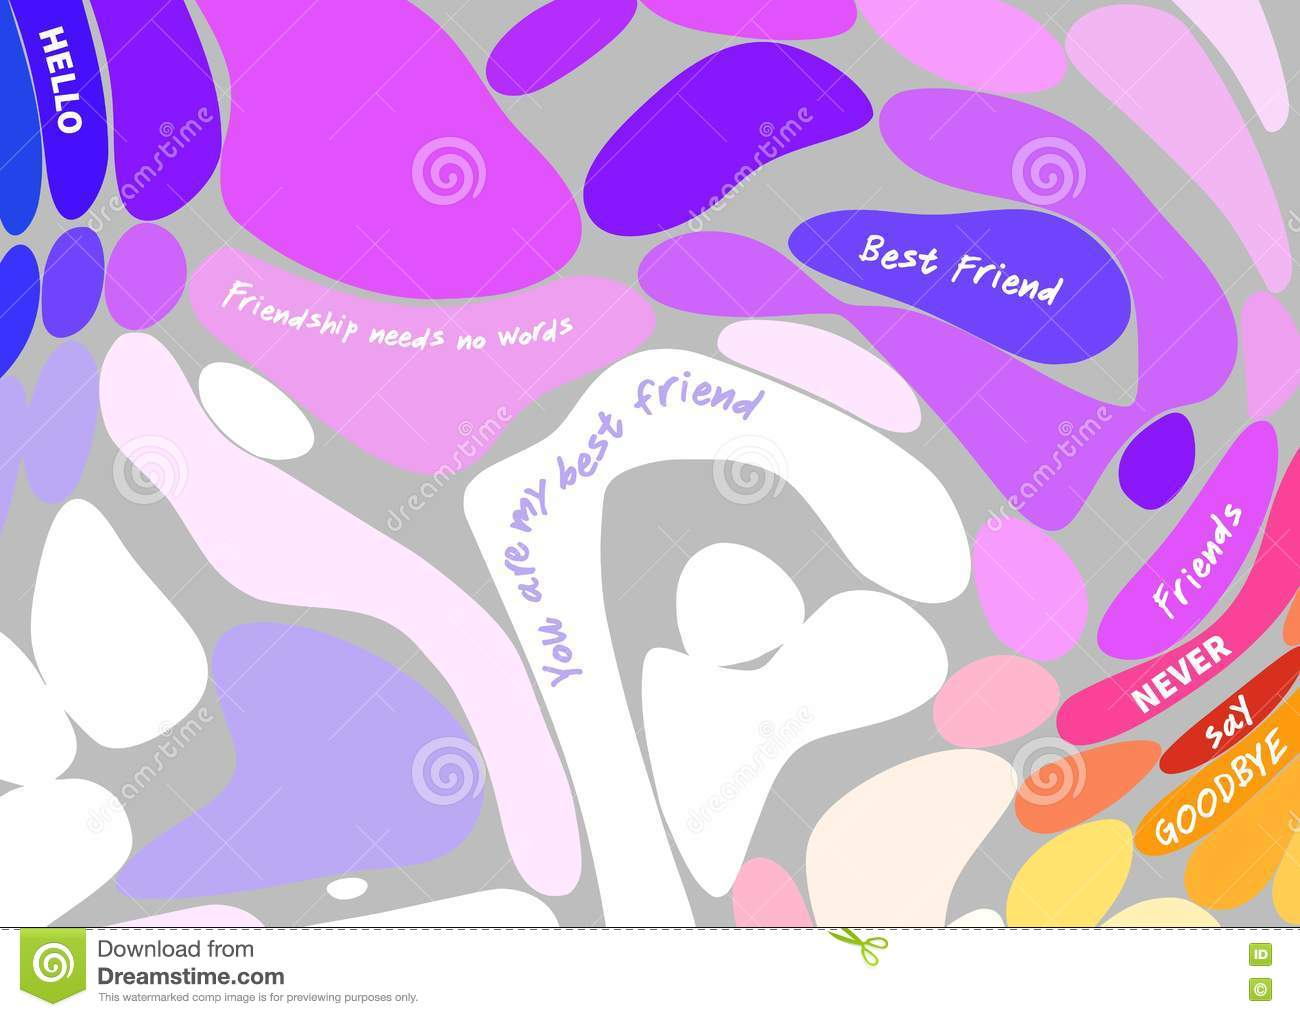 multicolored bubble background with inspirational quotes about friendship